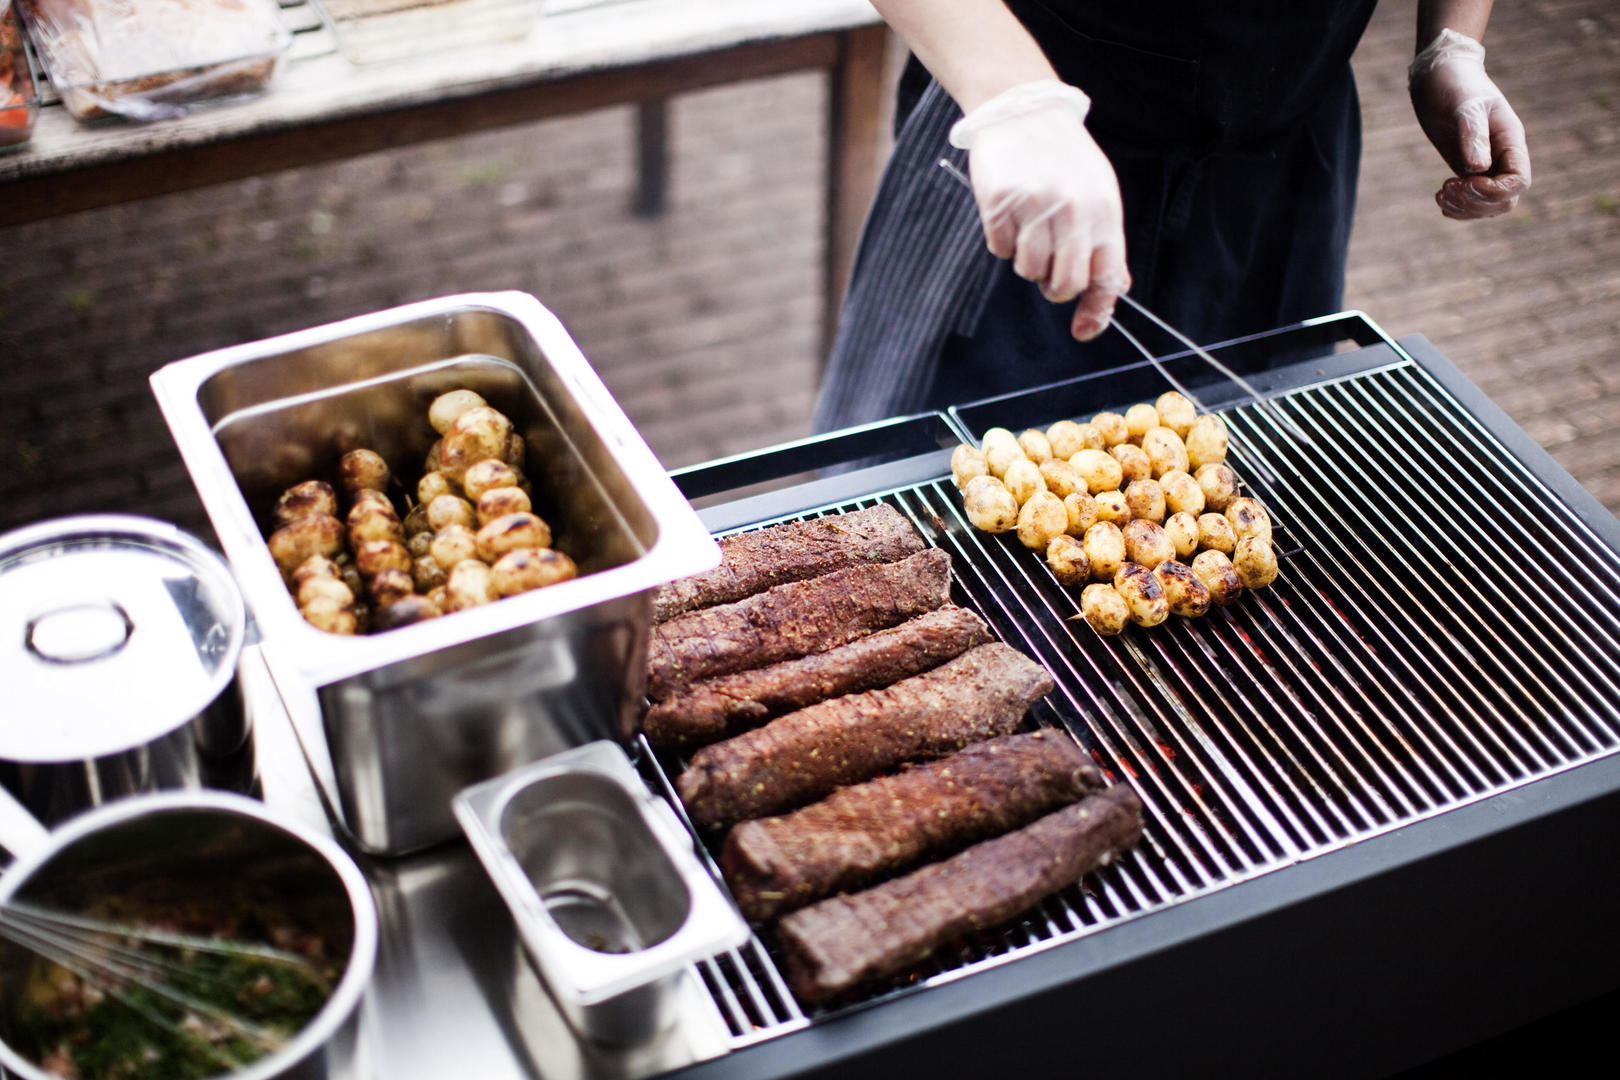 BBQ stainless steel 4.jpg